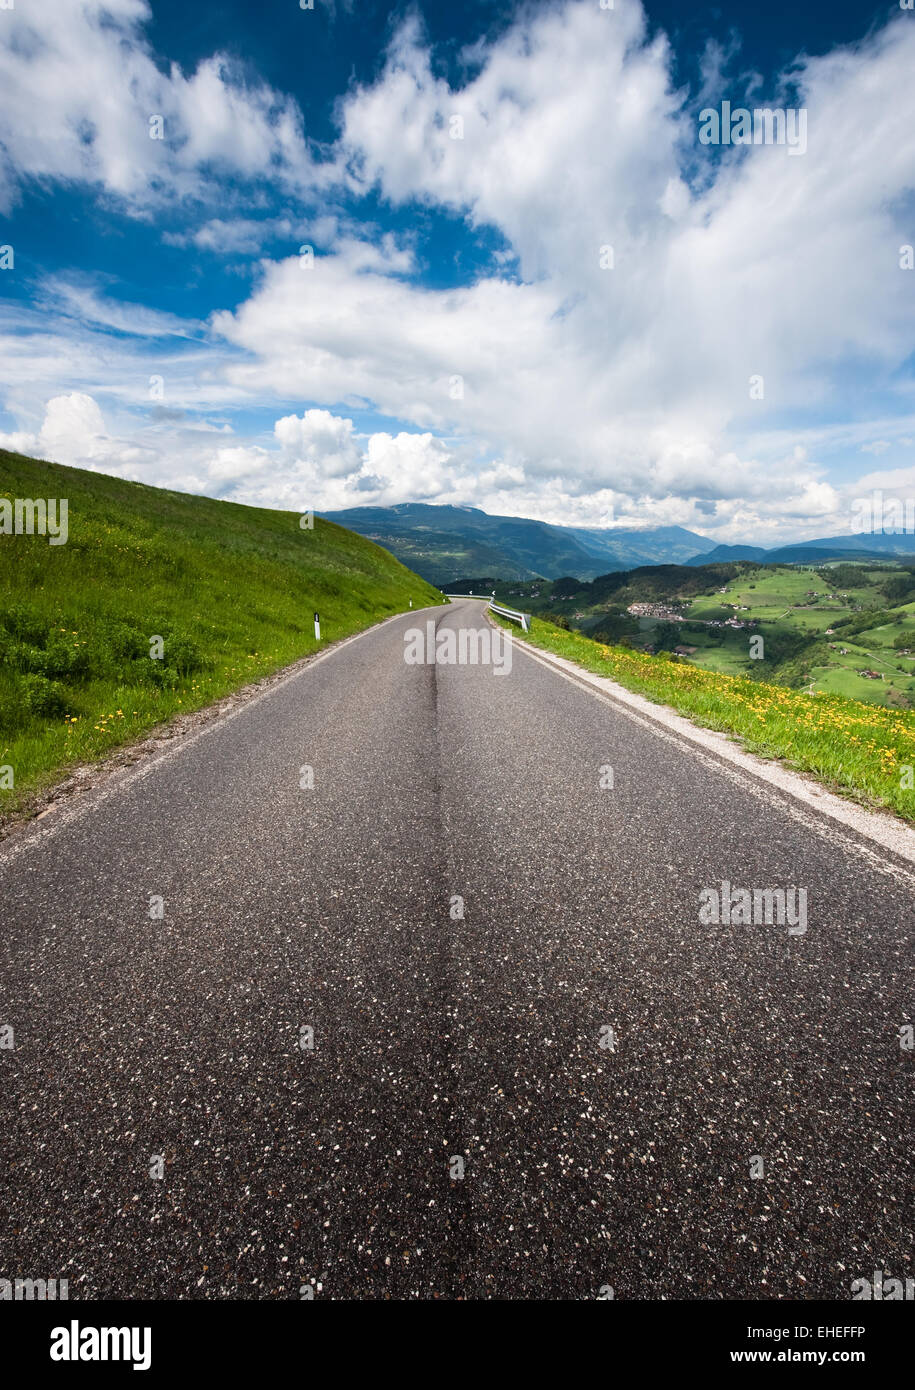 Country Road in the Alps - Stock Image